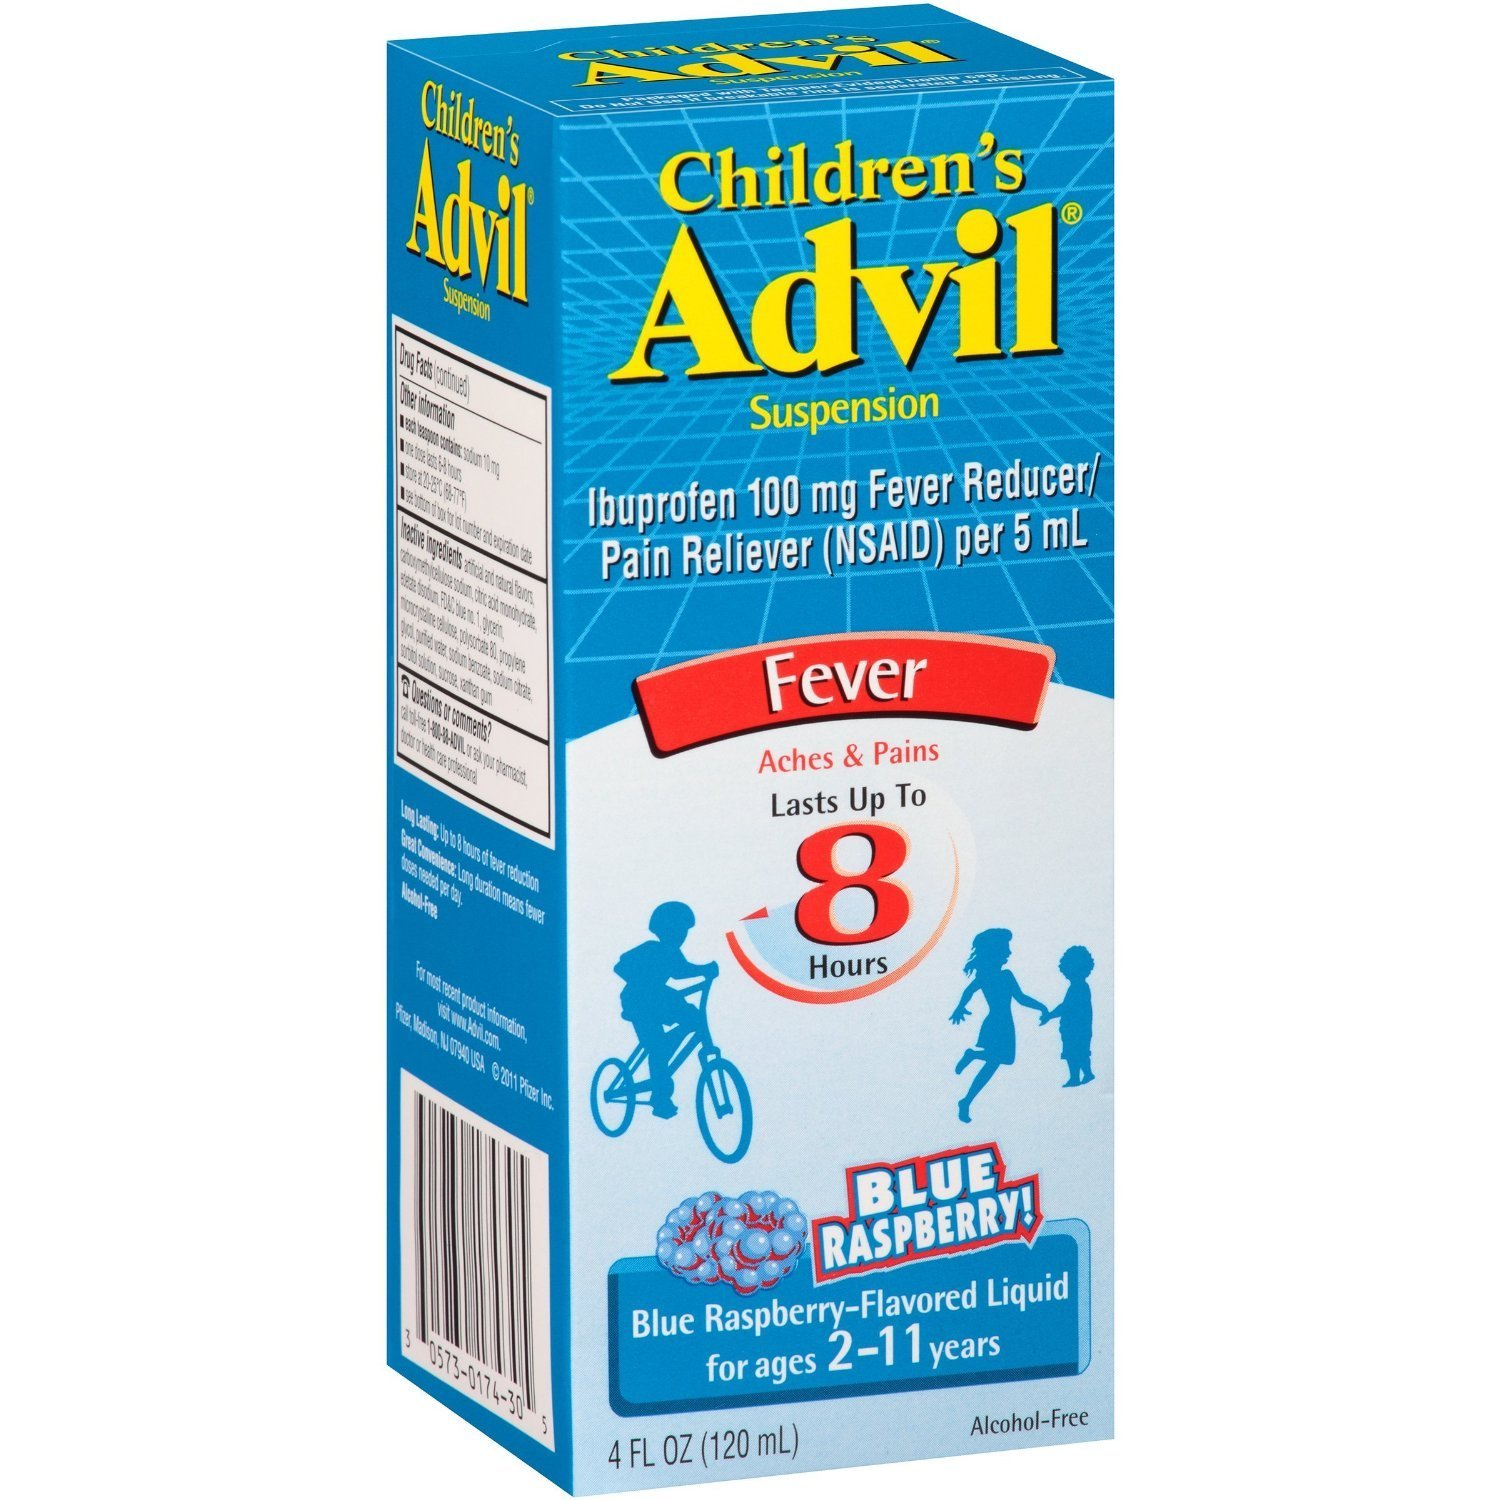 Advil Children's Pain Releiver, Blue Raspberry, 3 Count by Advil